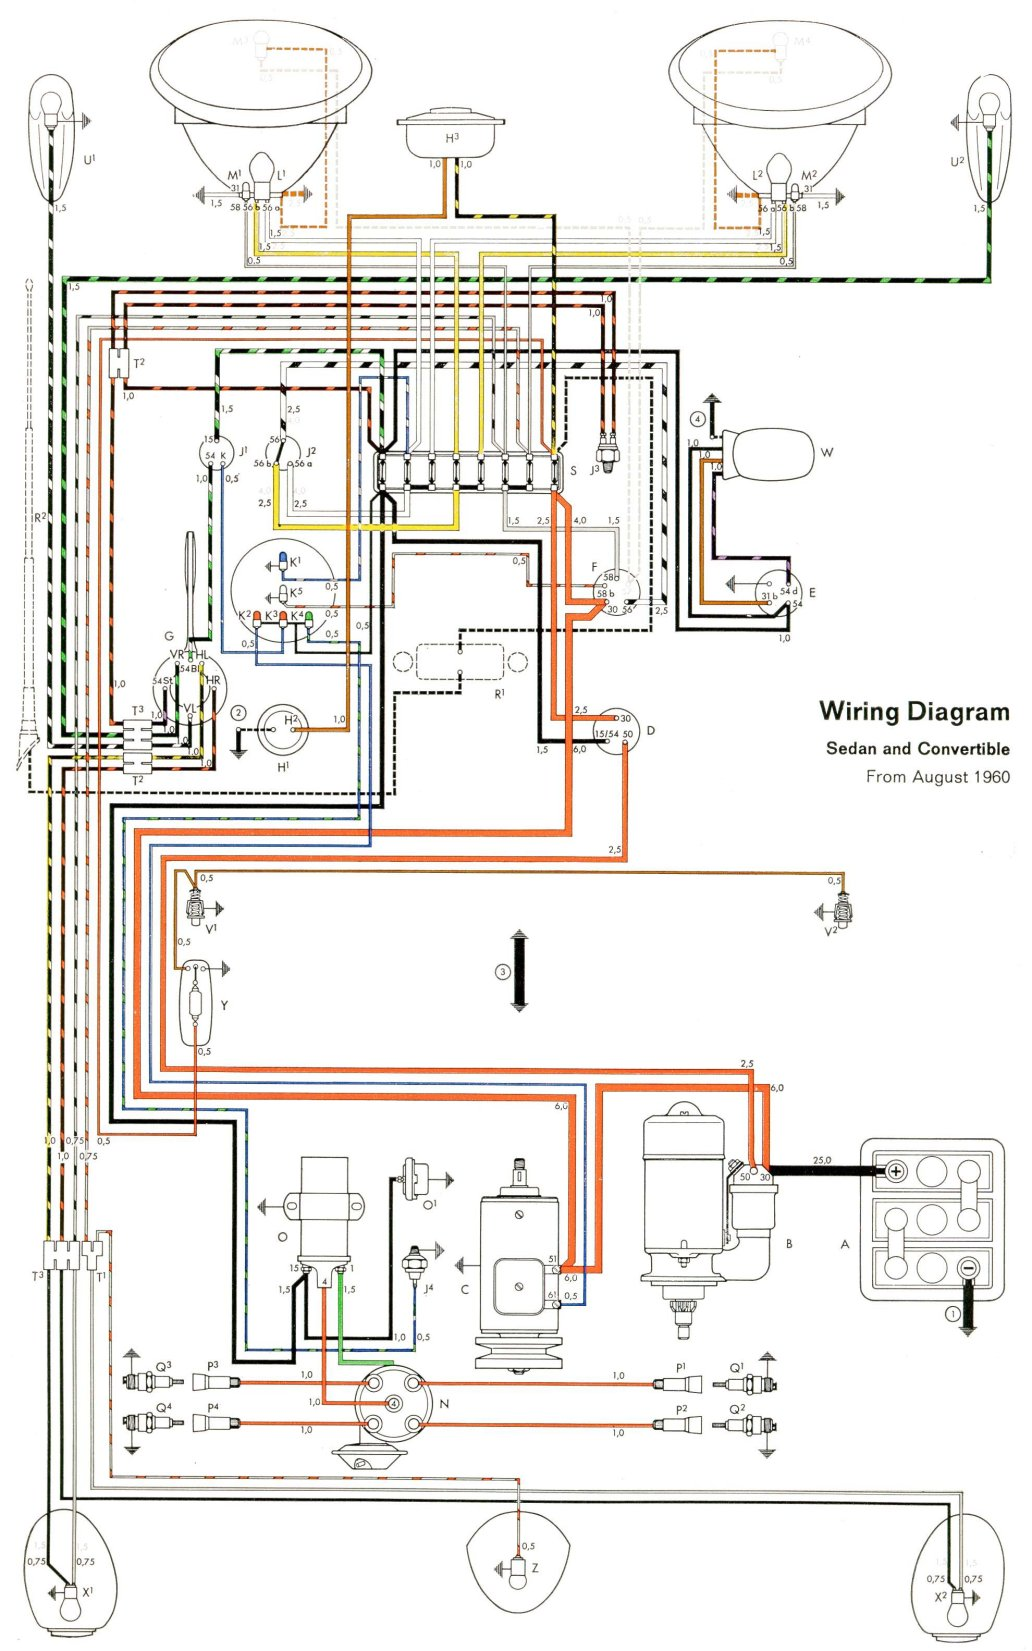 bug_61 info from 67 VW Beetle Wiring Diagram at bayanpartner.co